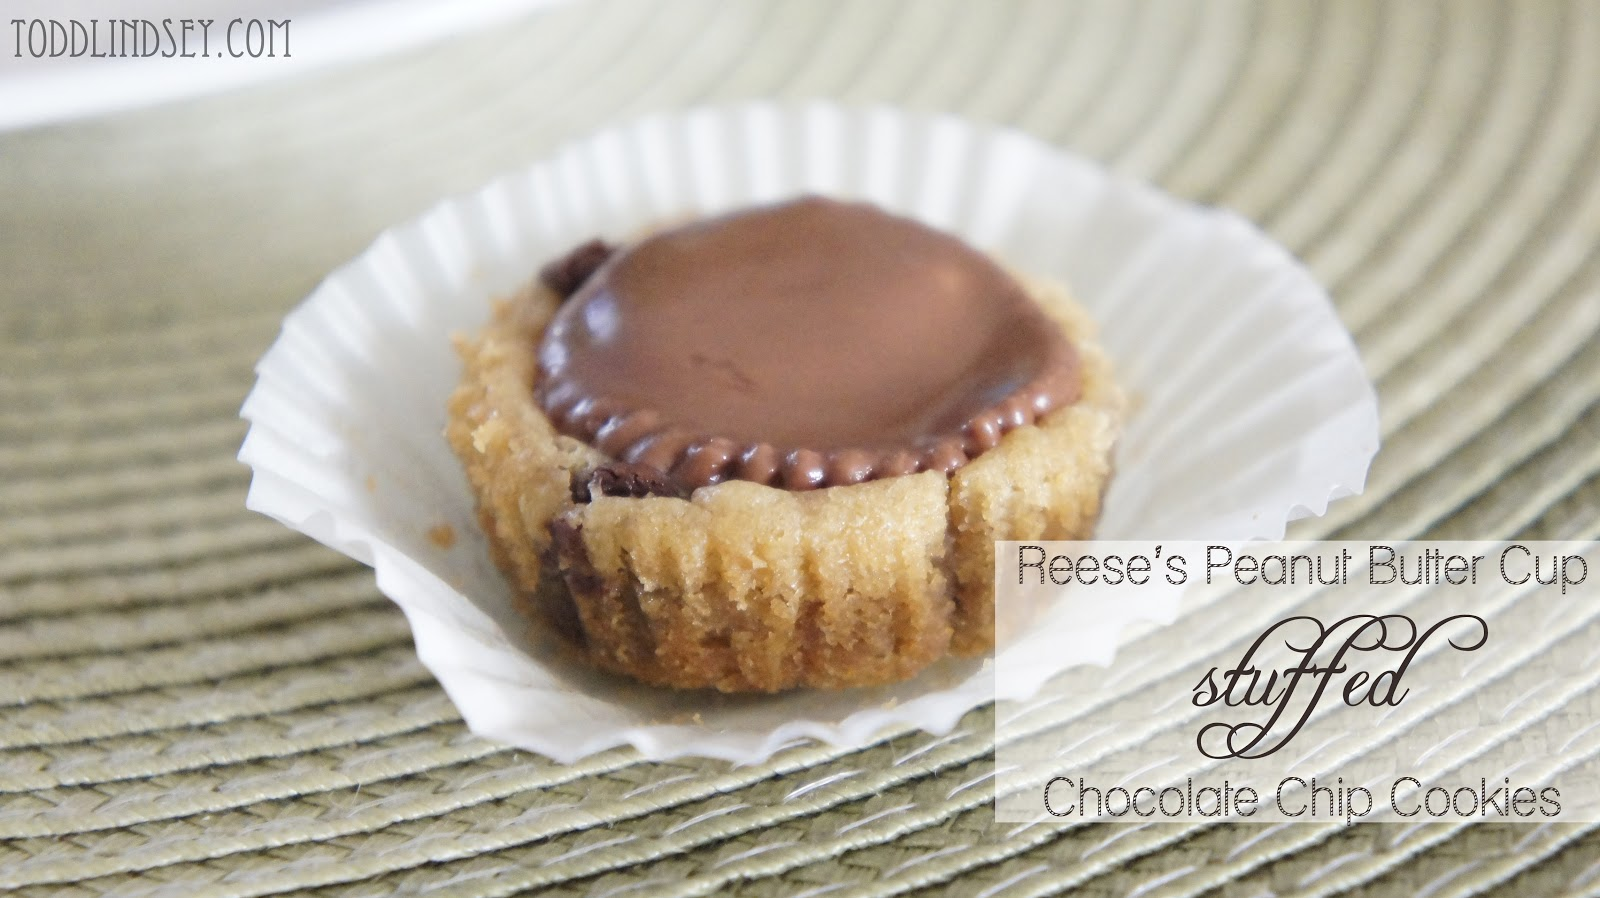 ... Lindsey: Reese's Peanut Butter Cup Stuffed Chocolate Chip Cookies